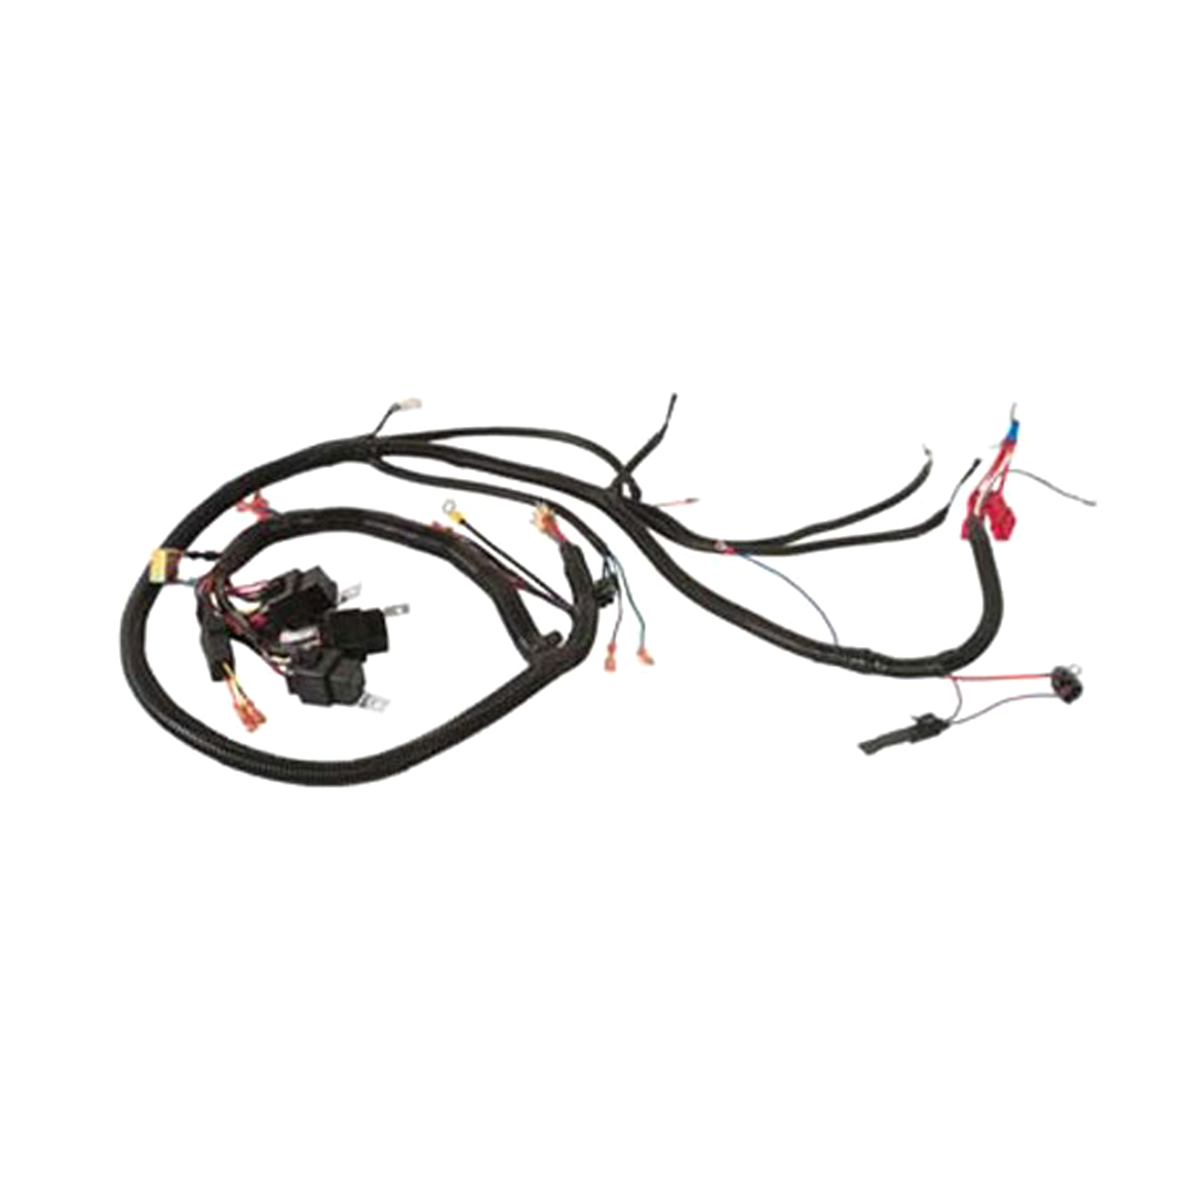 500089 Dixie Chopper Yanmar Diesel Wiring Harness